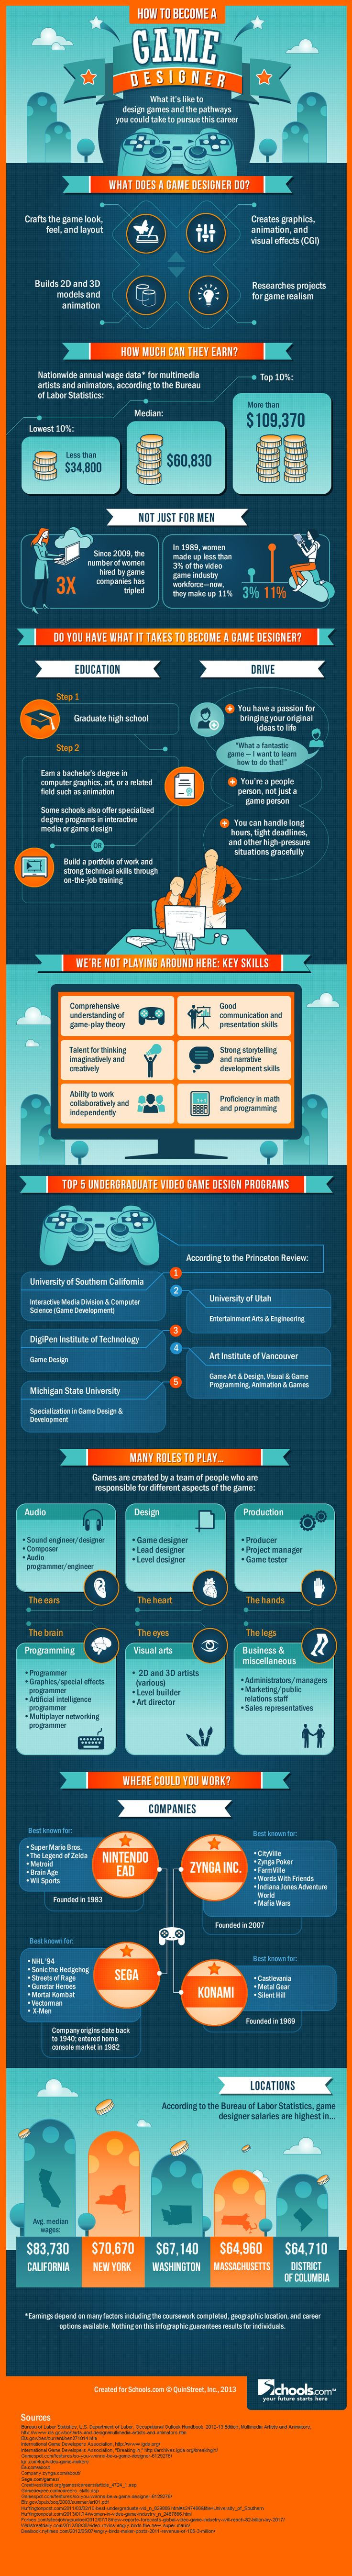 Learn how to become a game designer with this career infographic.